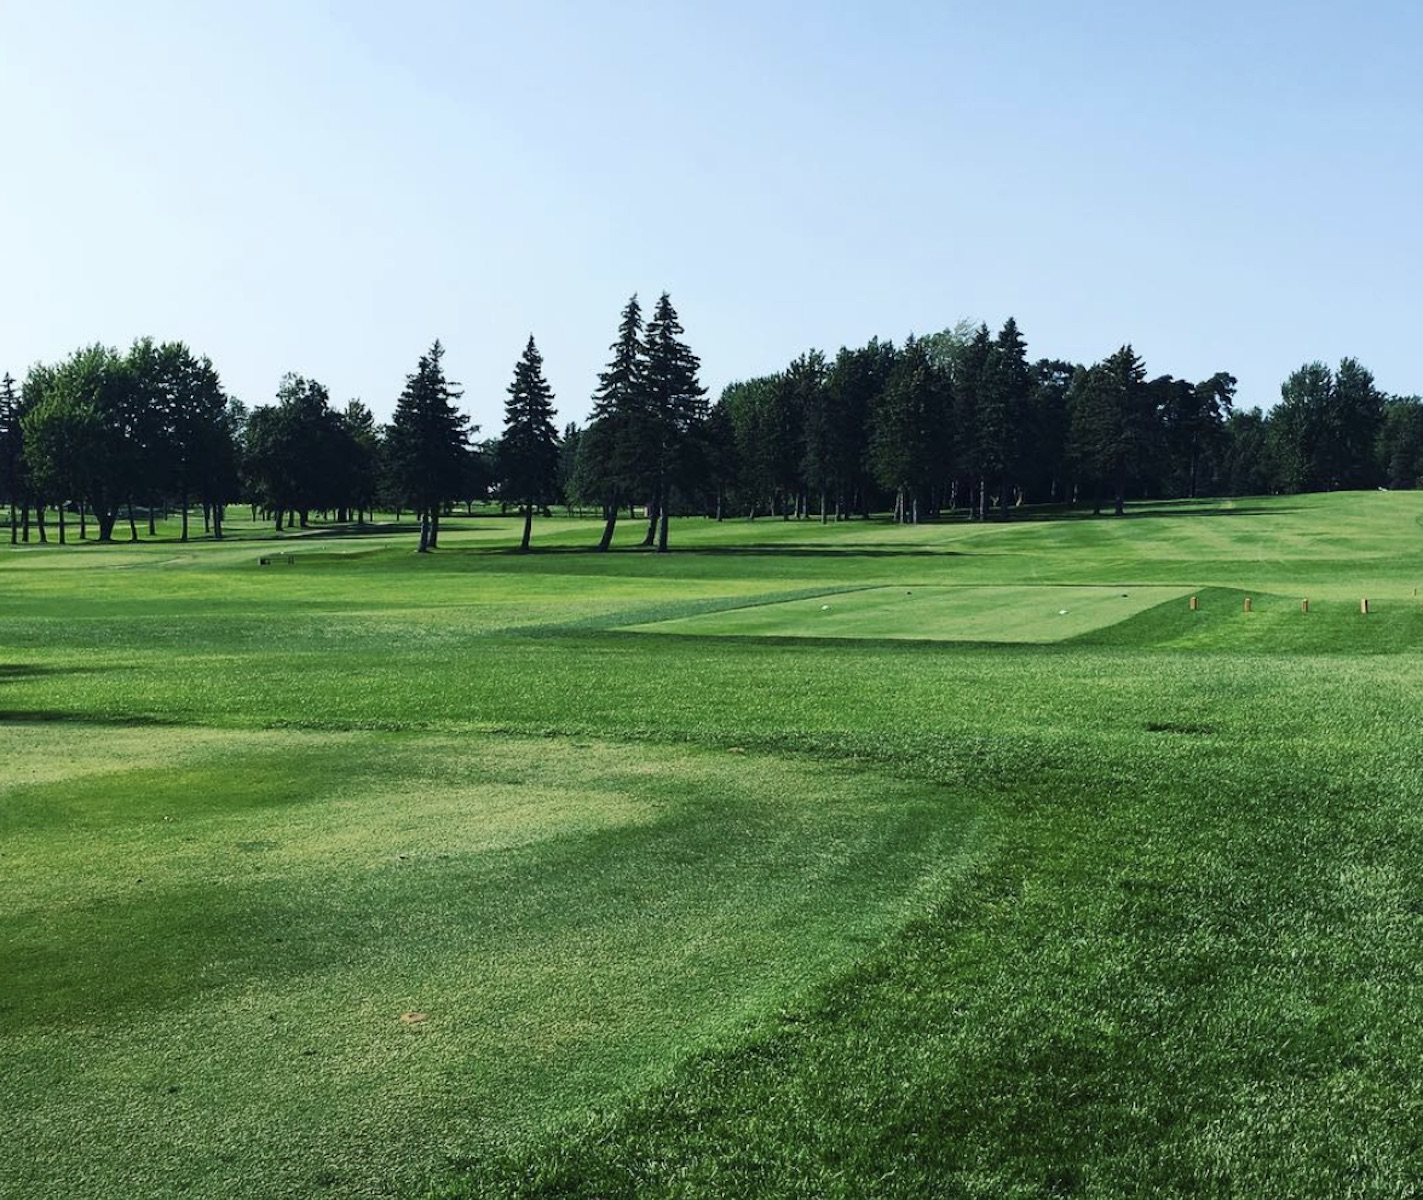 Transit Valley Country Club